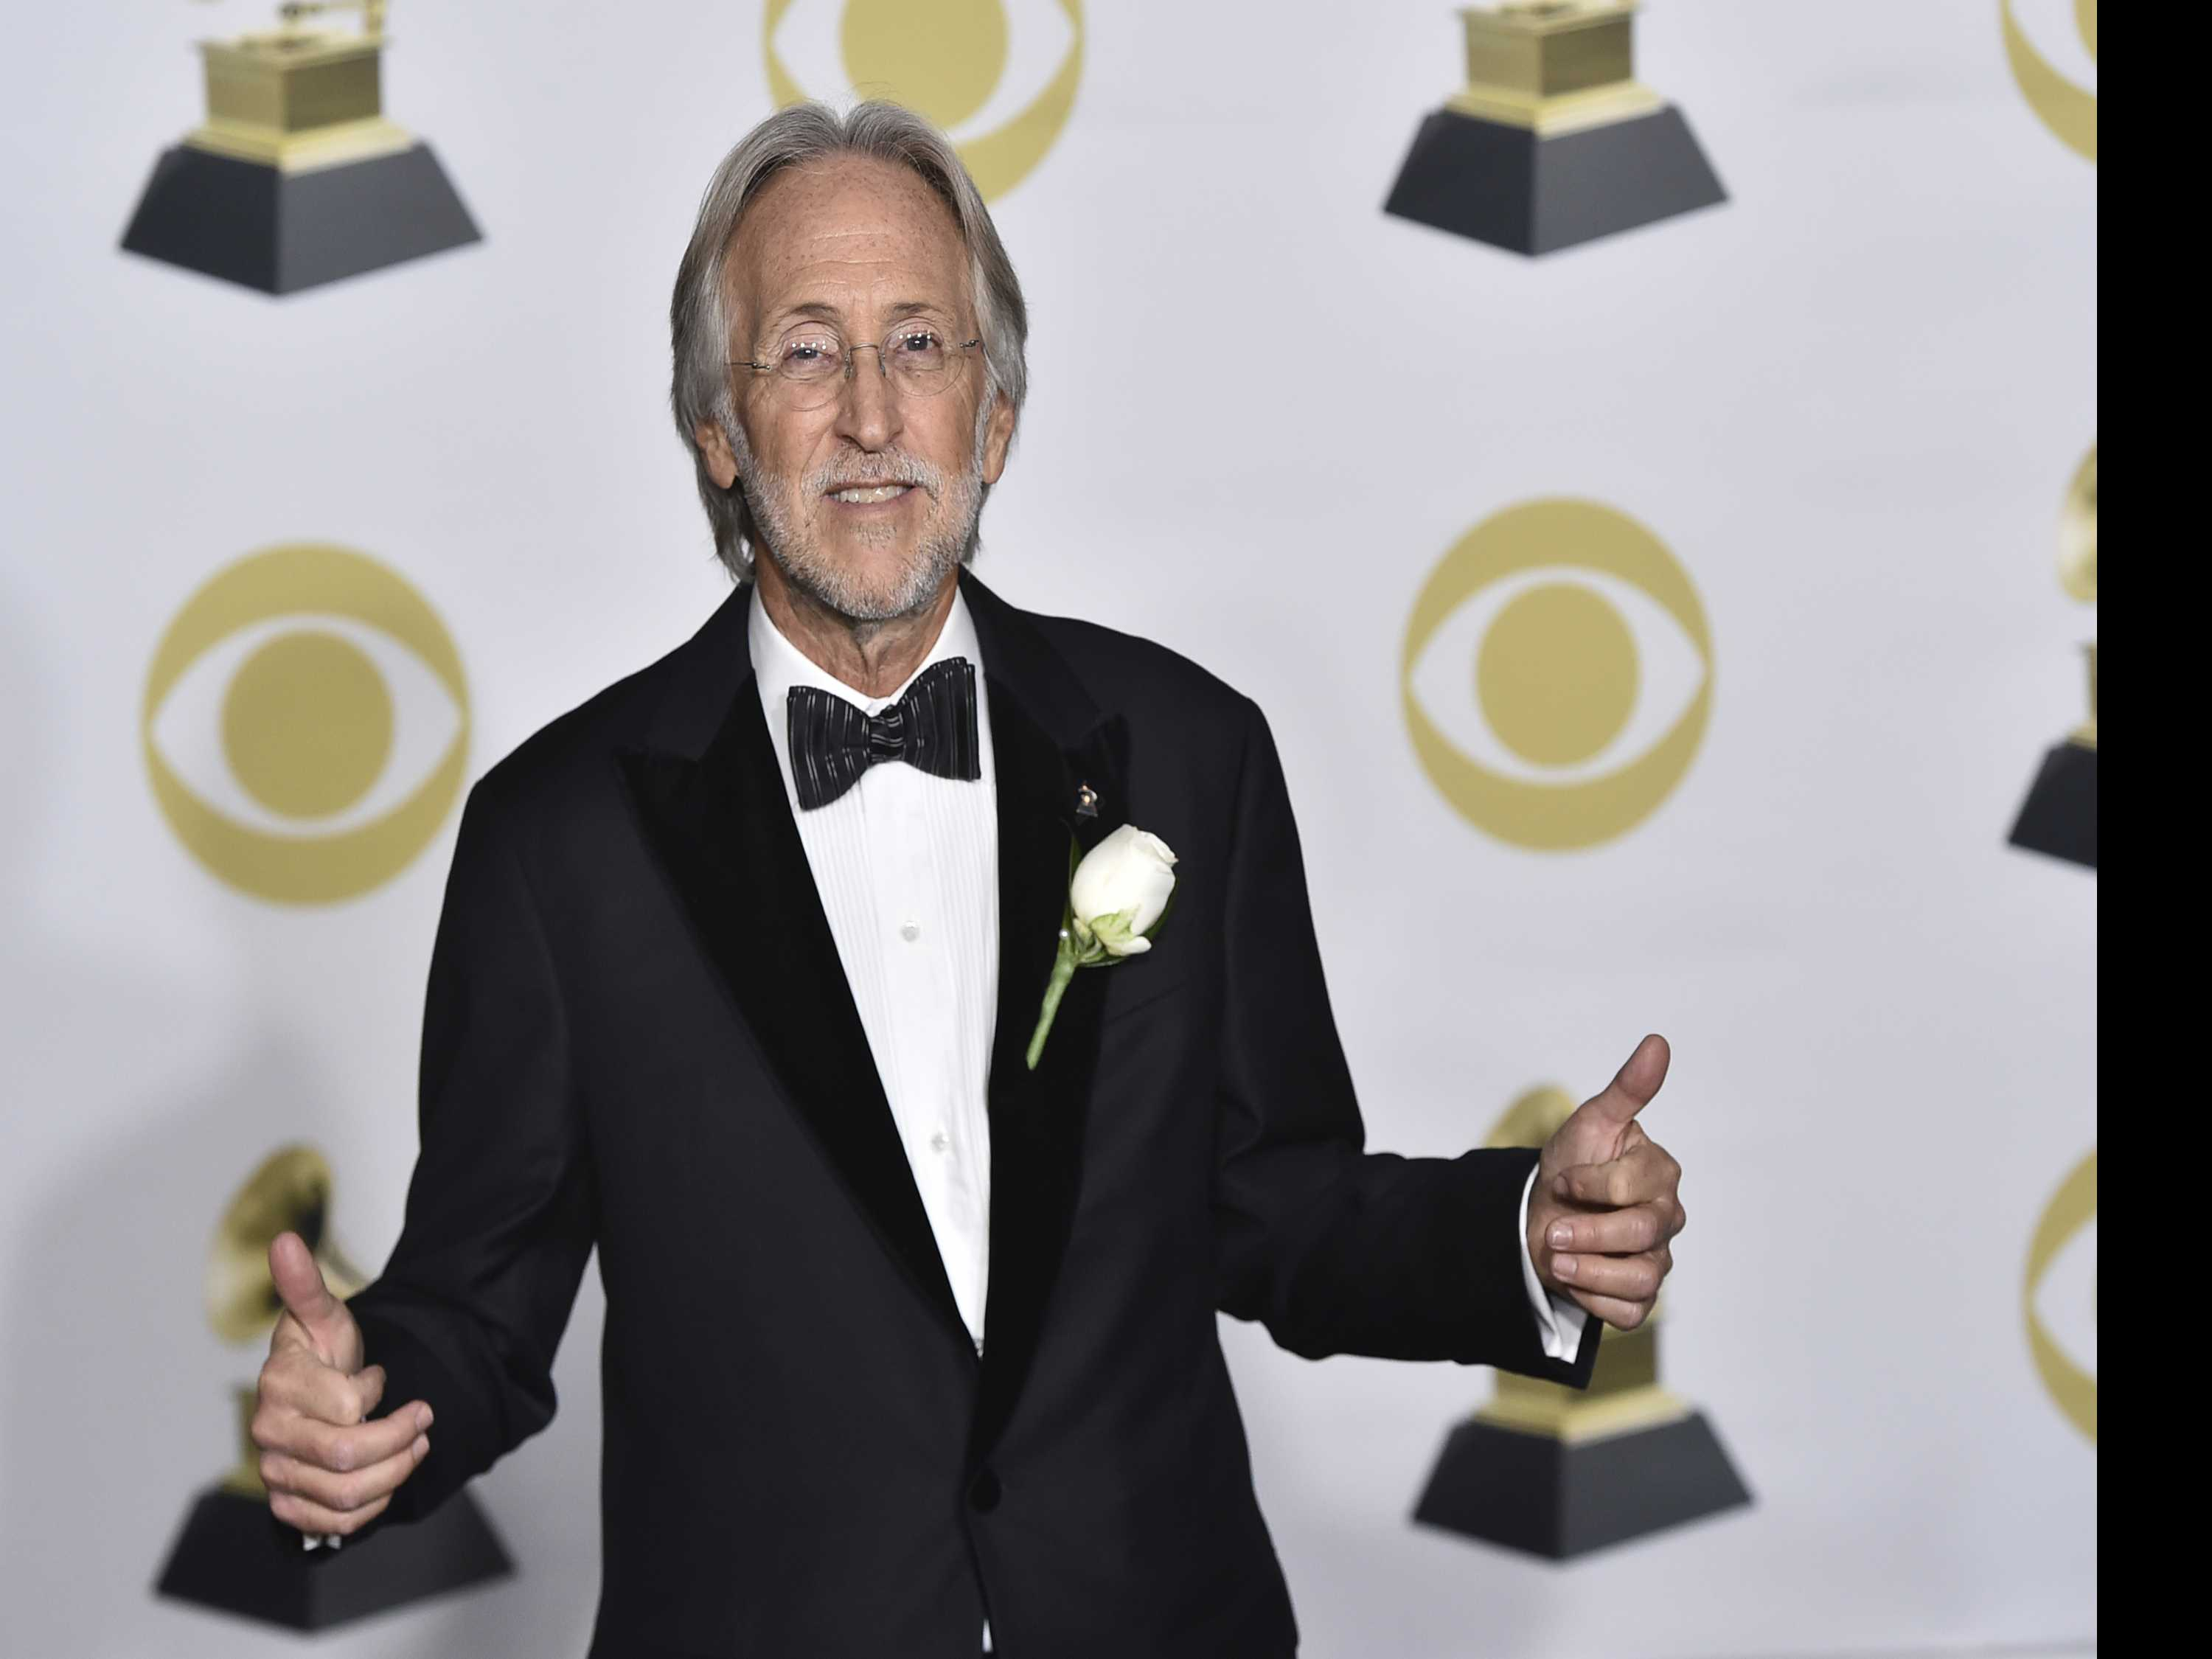 Recording Academy Head Criticized After Comments About Women